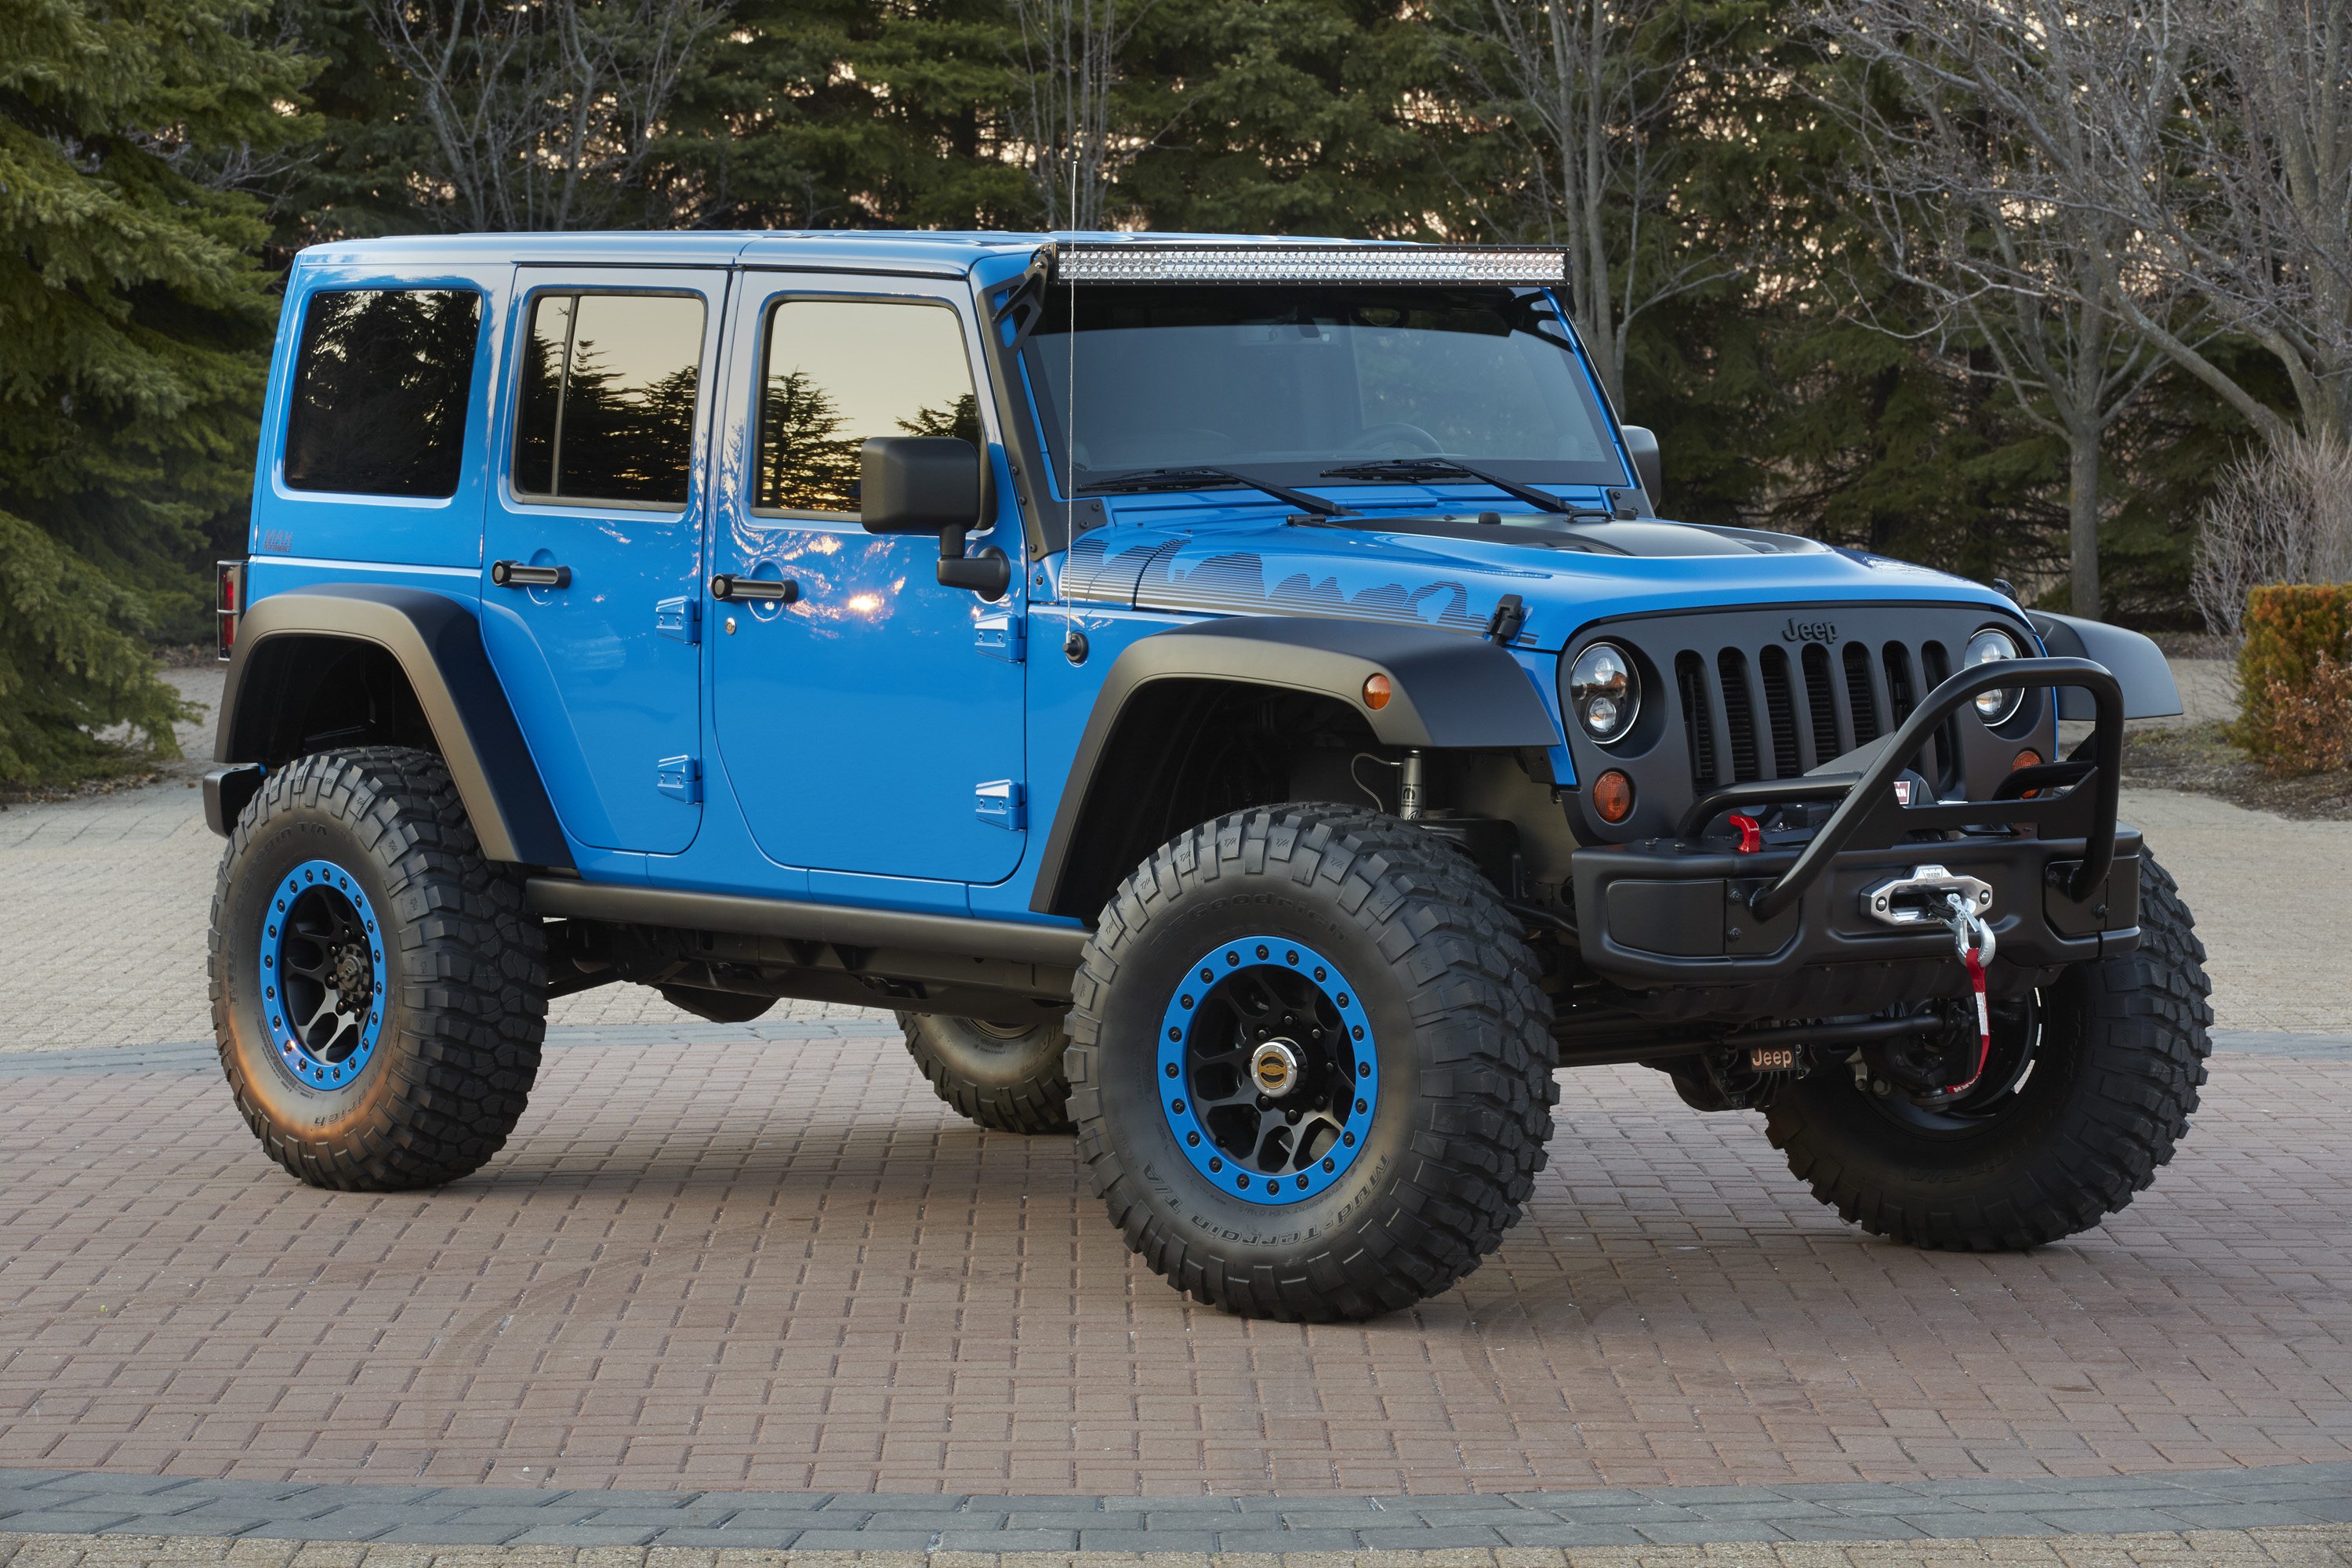 2014 Jeep Wrangler Maximum Performance Top Speed Jk With 37 Inch Tires